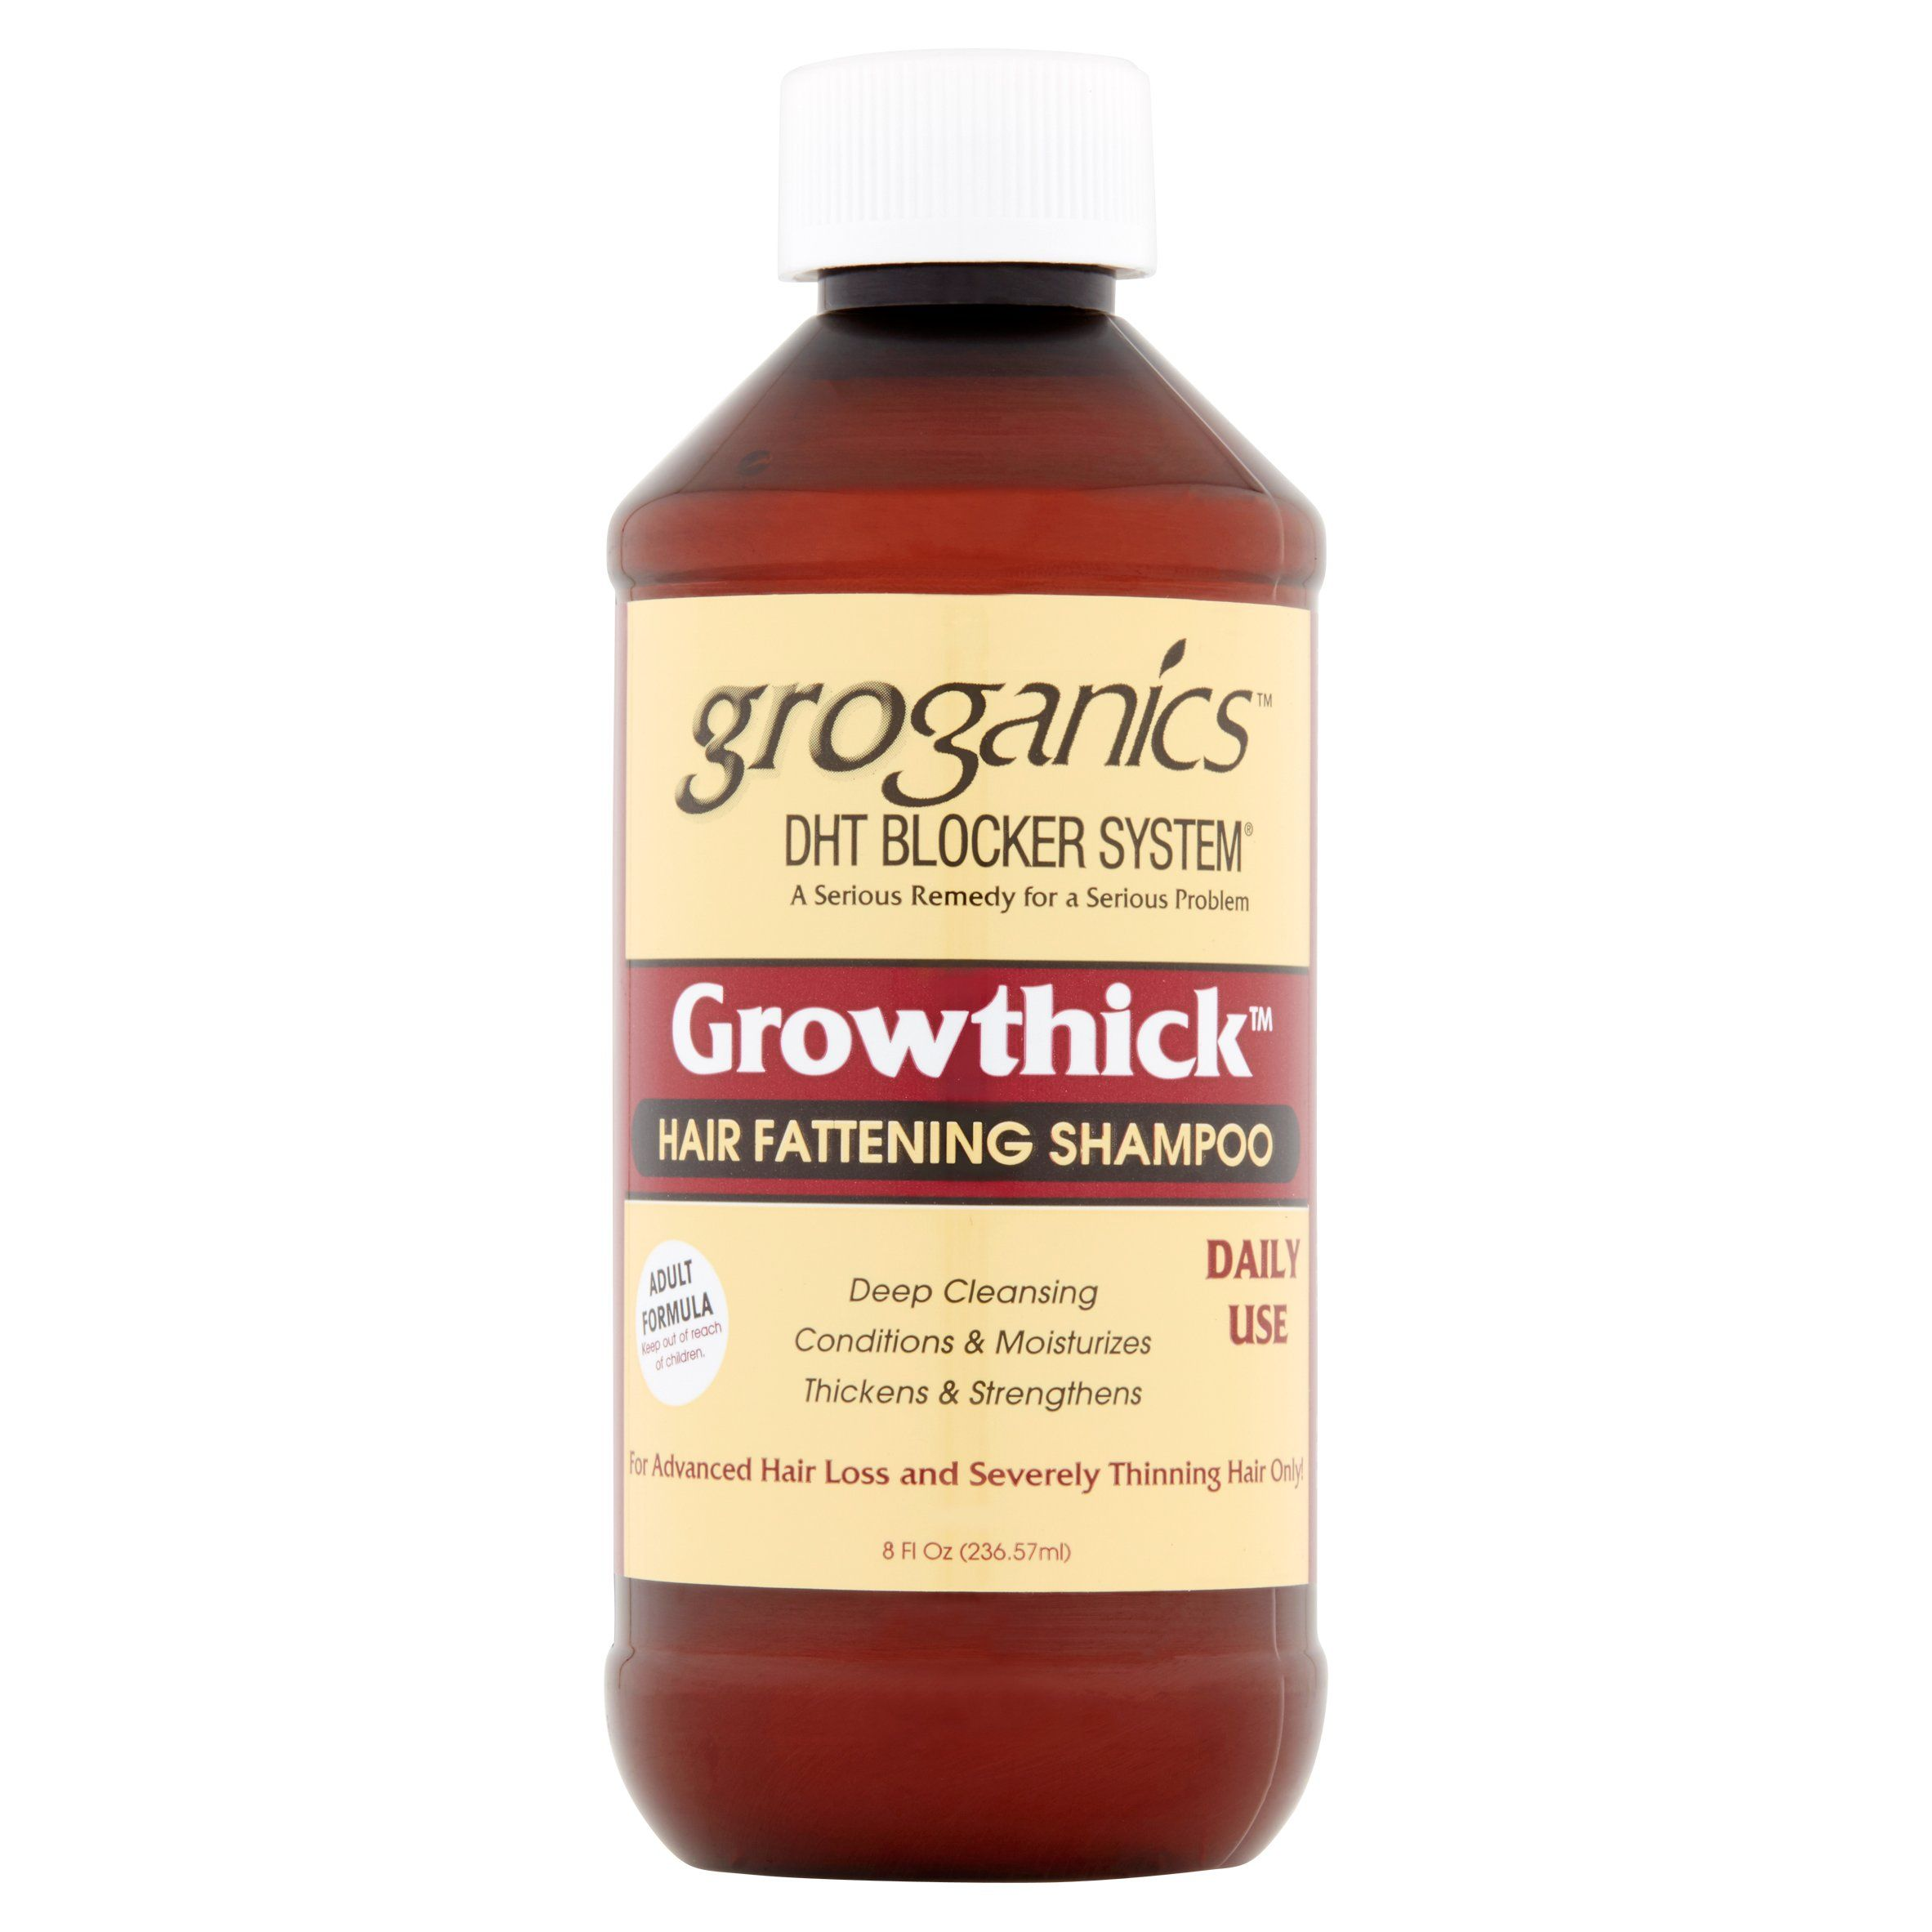 Beauty in 2020 (With images) Groganics dht blocker